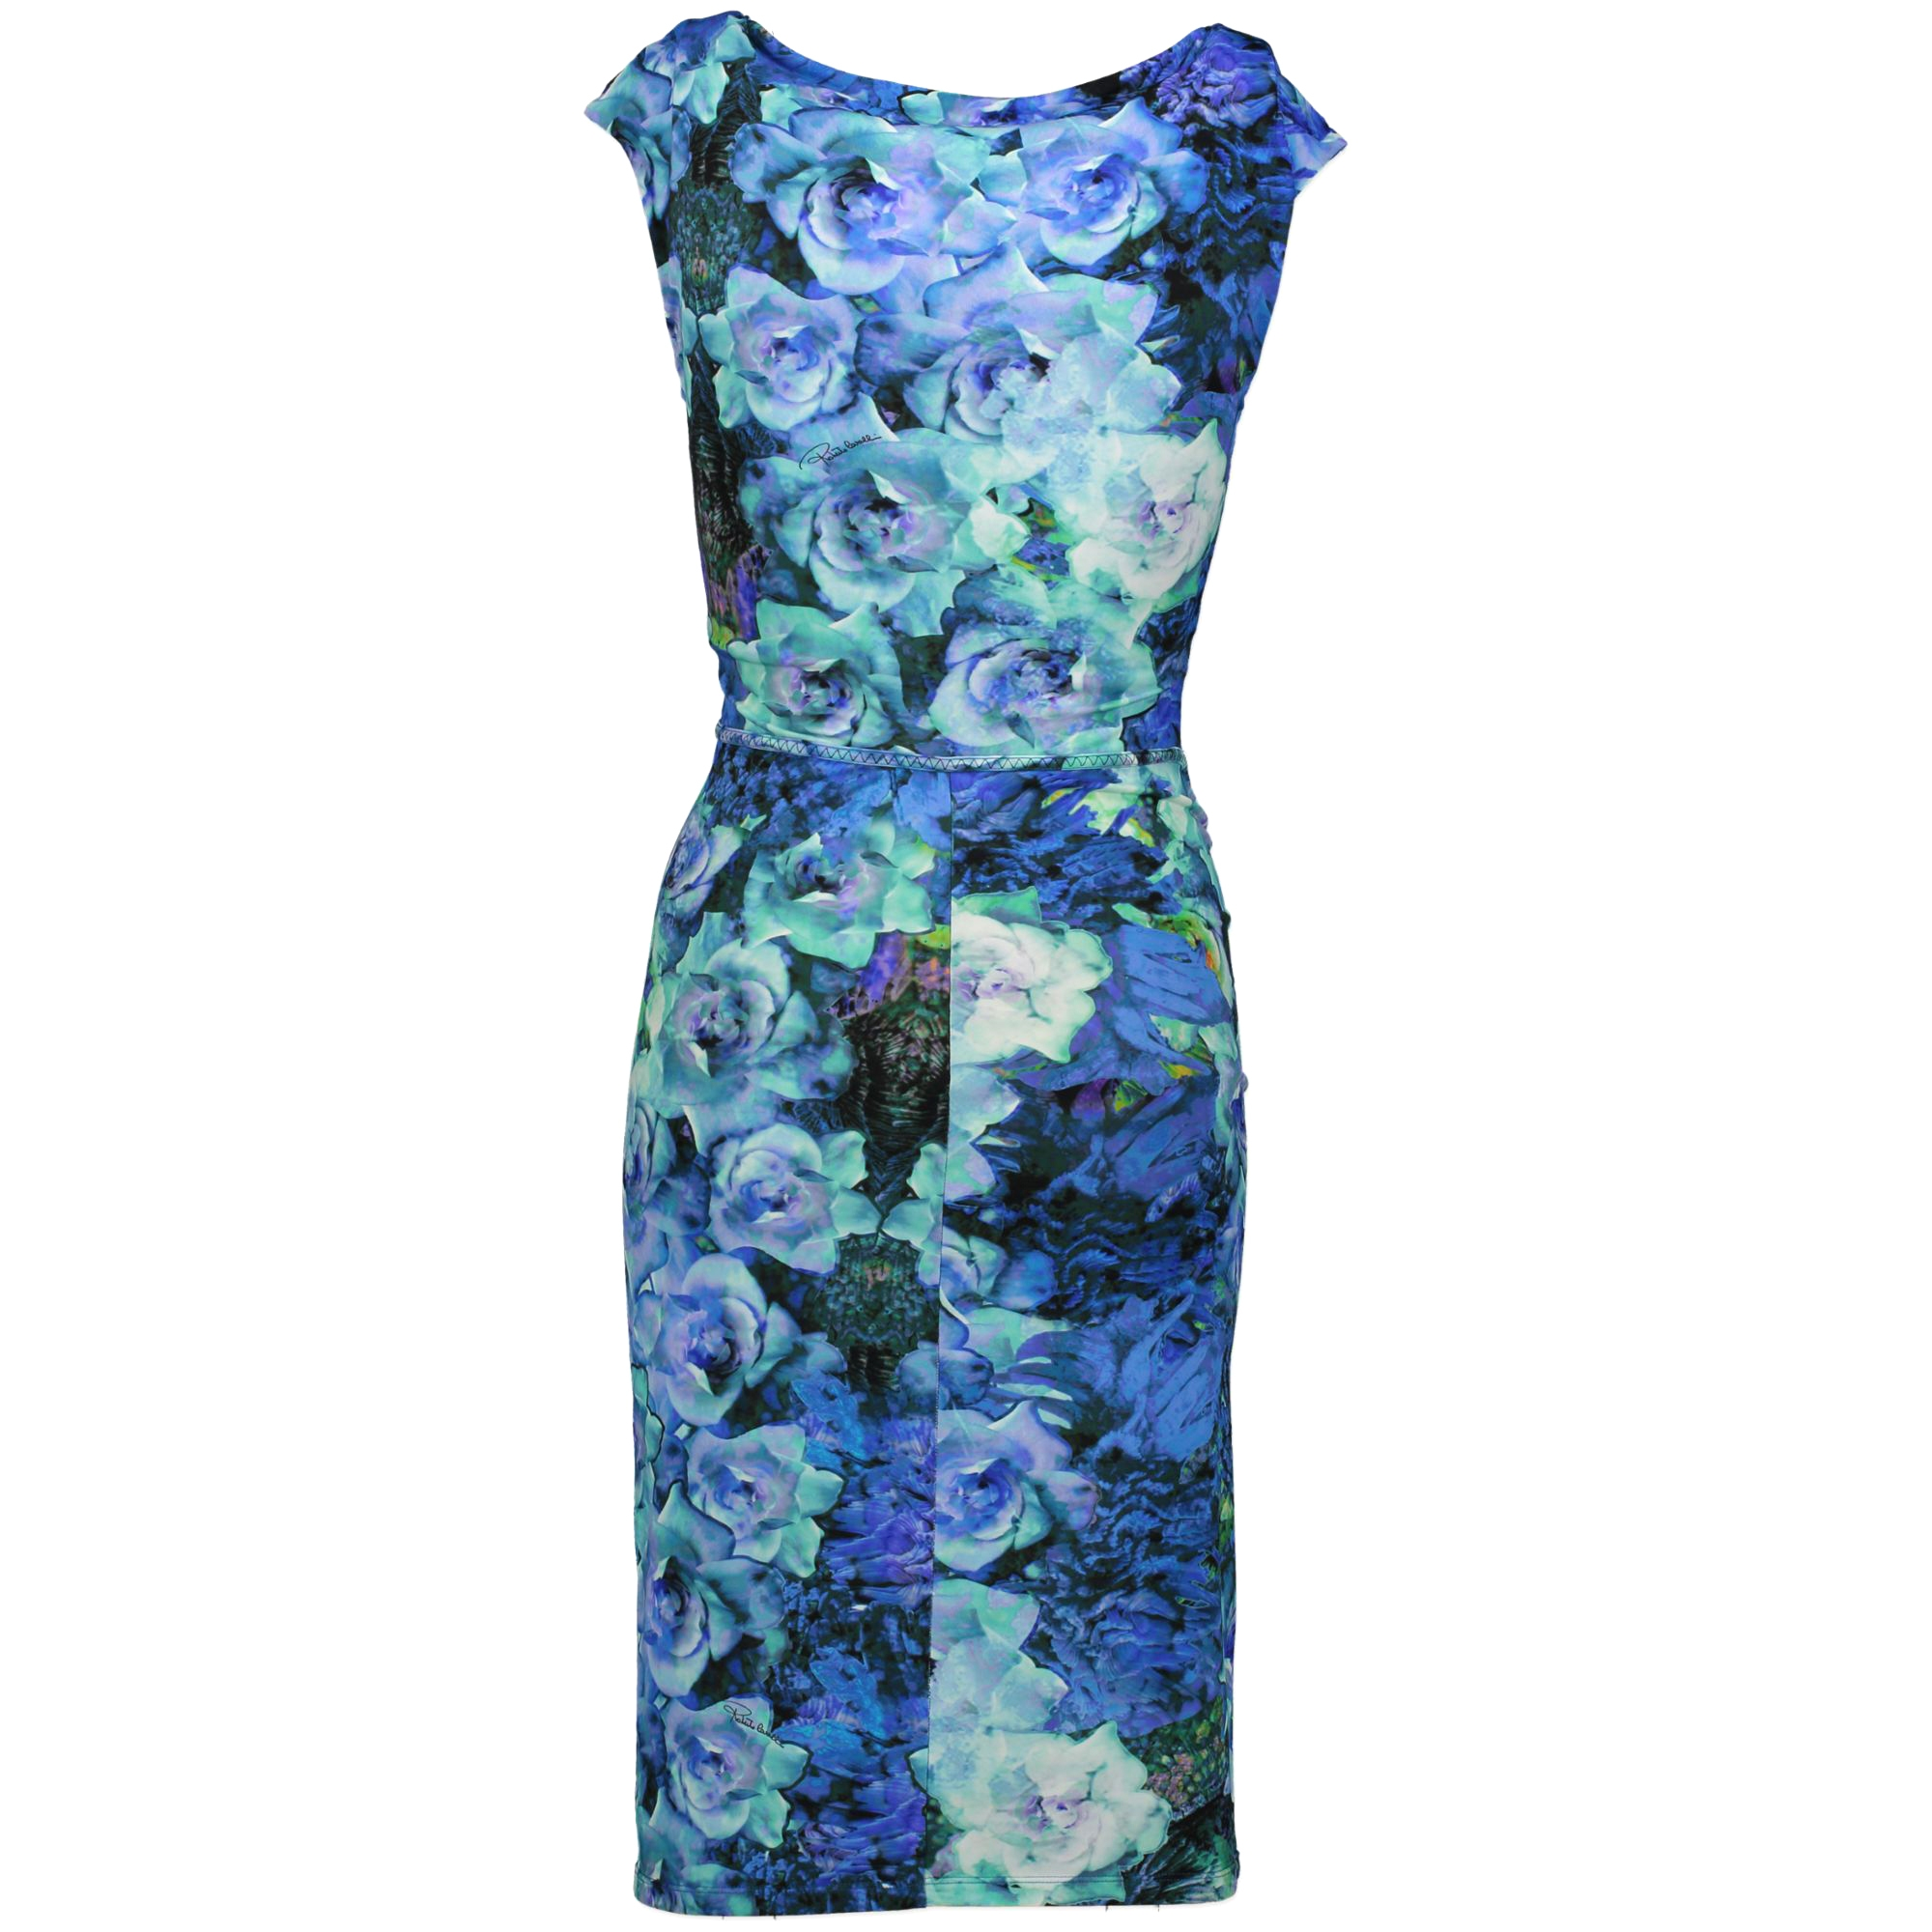 Roberto Cavalli Floral Dress - Size XS/S. Buy authentic secondhand clothing Roberto Cavalli online. Safe payment. Koop authentieke tweedehandskleding van Roberto Cavalli webshop. Acheter vêtements authentiques de Roberto Cavalli en ligne.